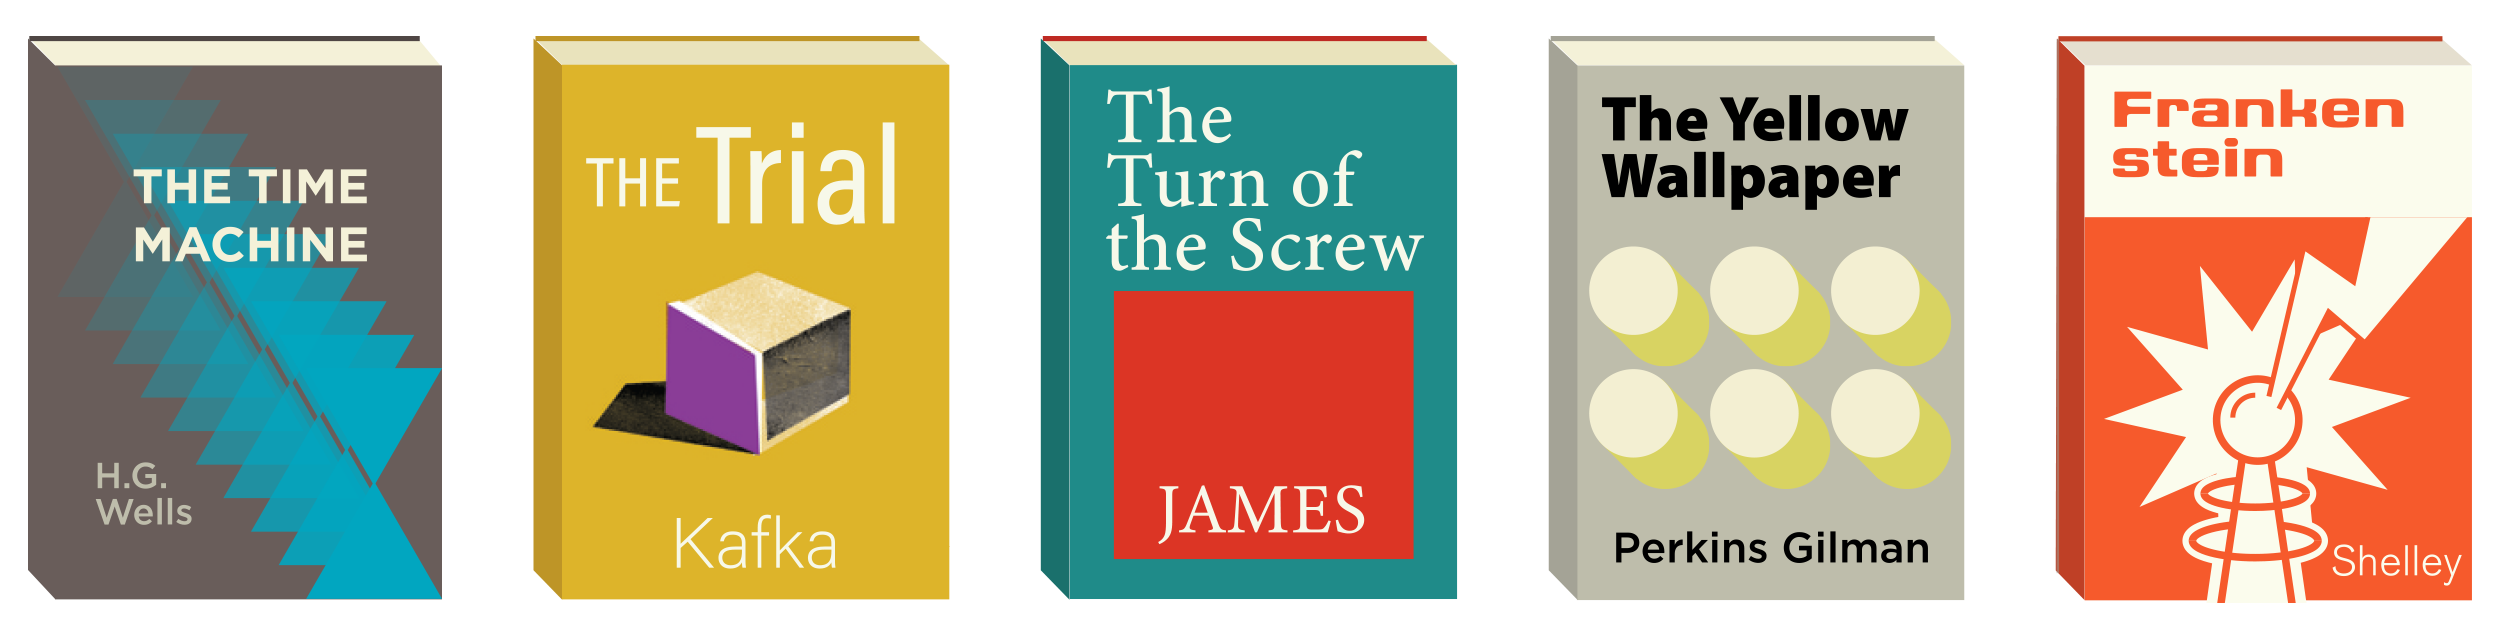 book-rows-06.png